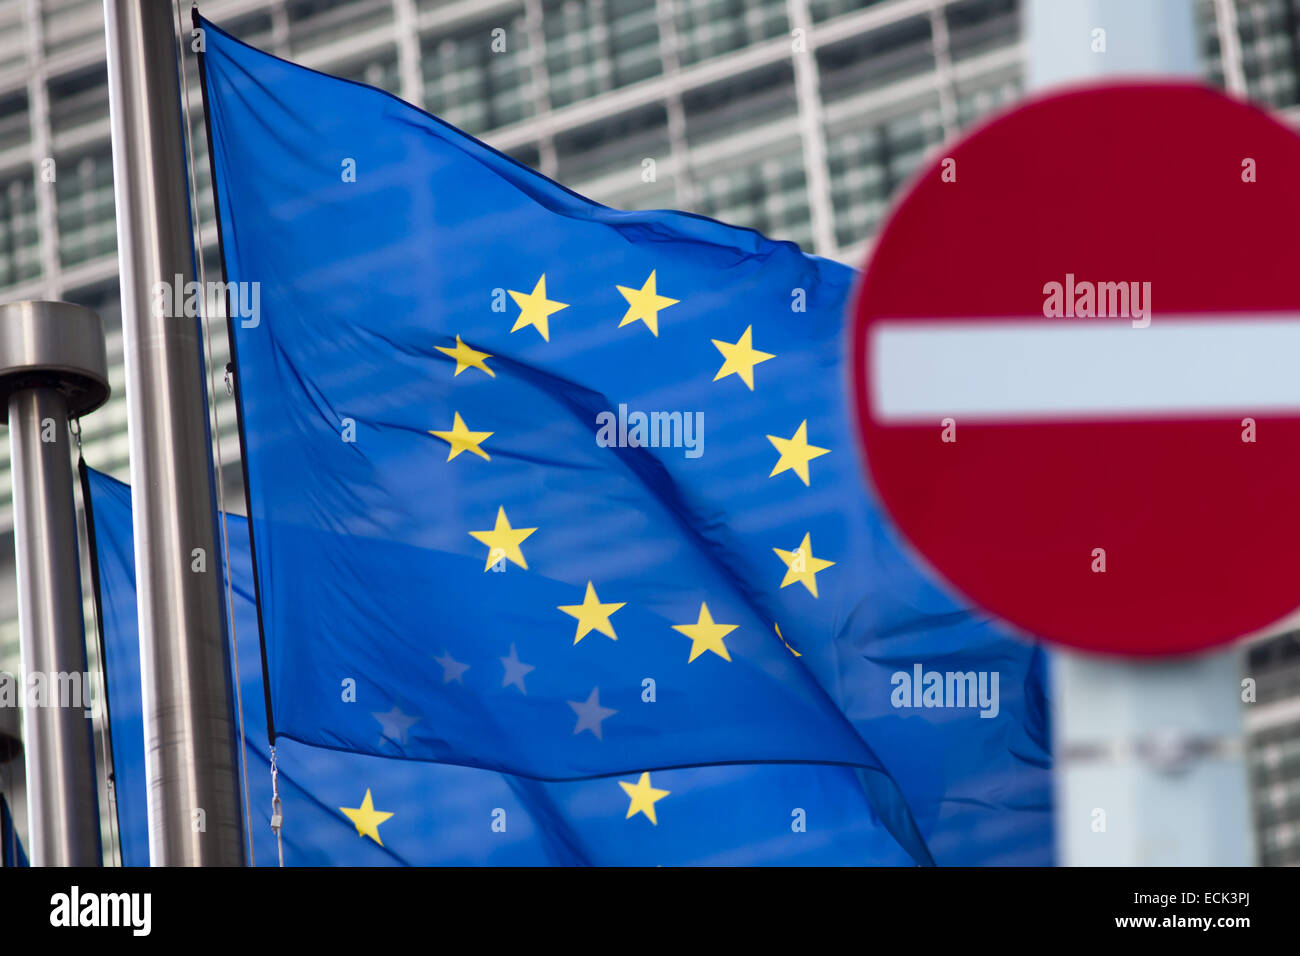 Russia sanctions. 'No entry' sign in front of European comission flags. - Stock Image